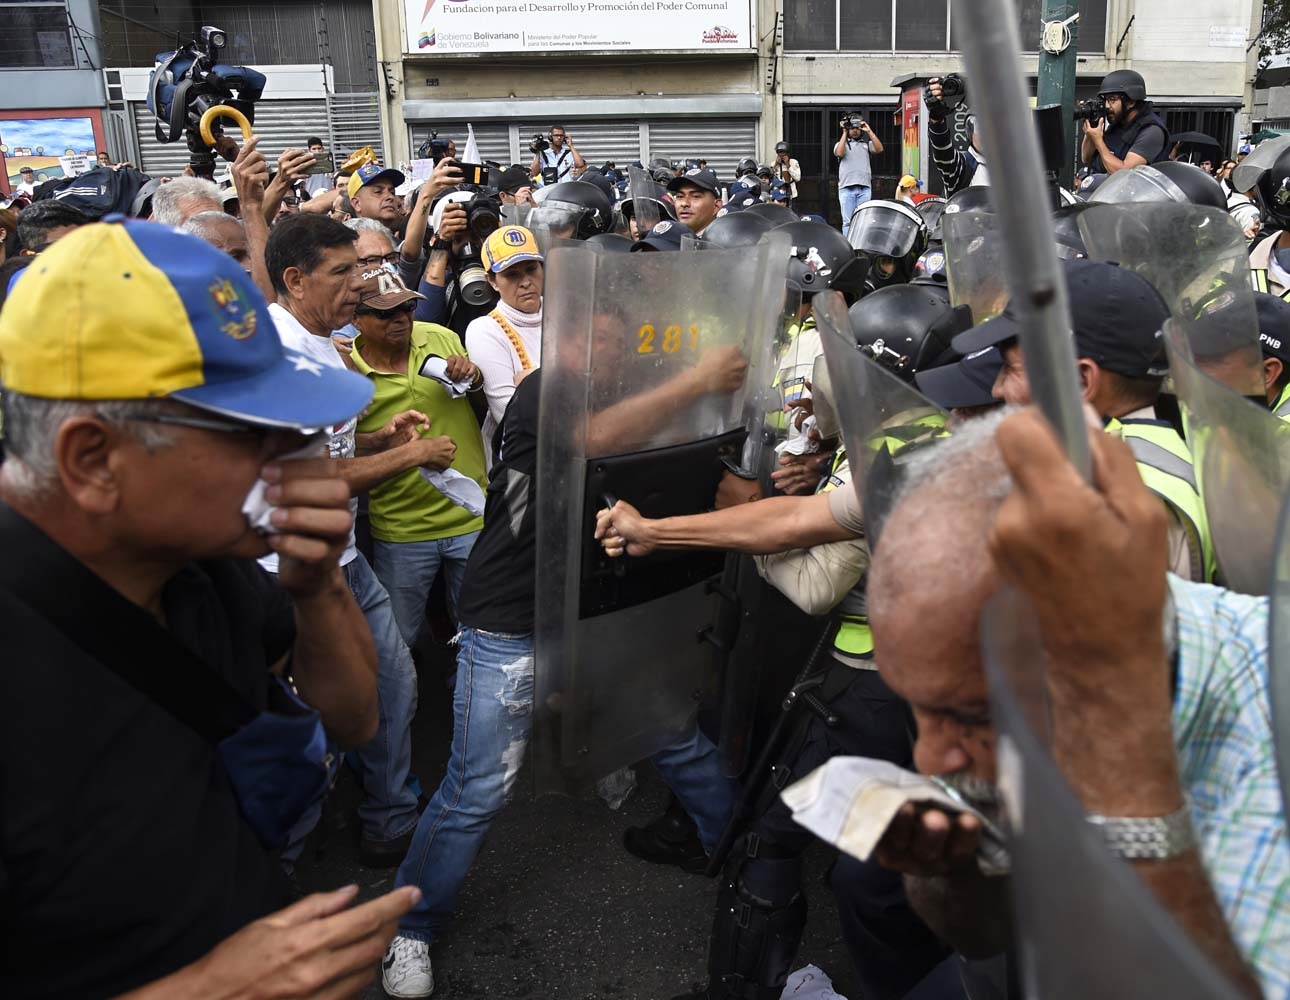 Opposition activists confront riot police during a protest against the government in Caracas on May 12, 2017. Daily clashes between demonstrators -who blame elected President Nicolas Maduro for an economic crisis that has caused food shortage- and security forces have left 38 people dead since April 1. Protesters demand early elections, accusing Maduro of repressing protesters and trying to install a dictatorship. / AFP PHOTO / JUAN BARRETO